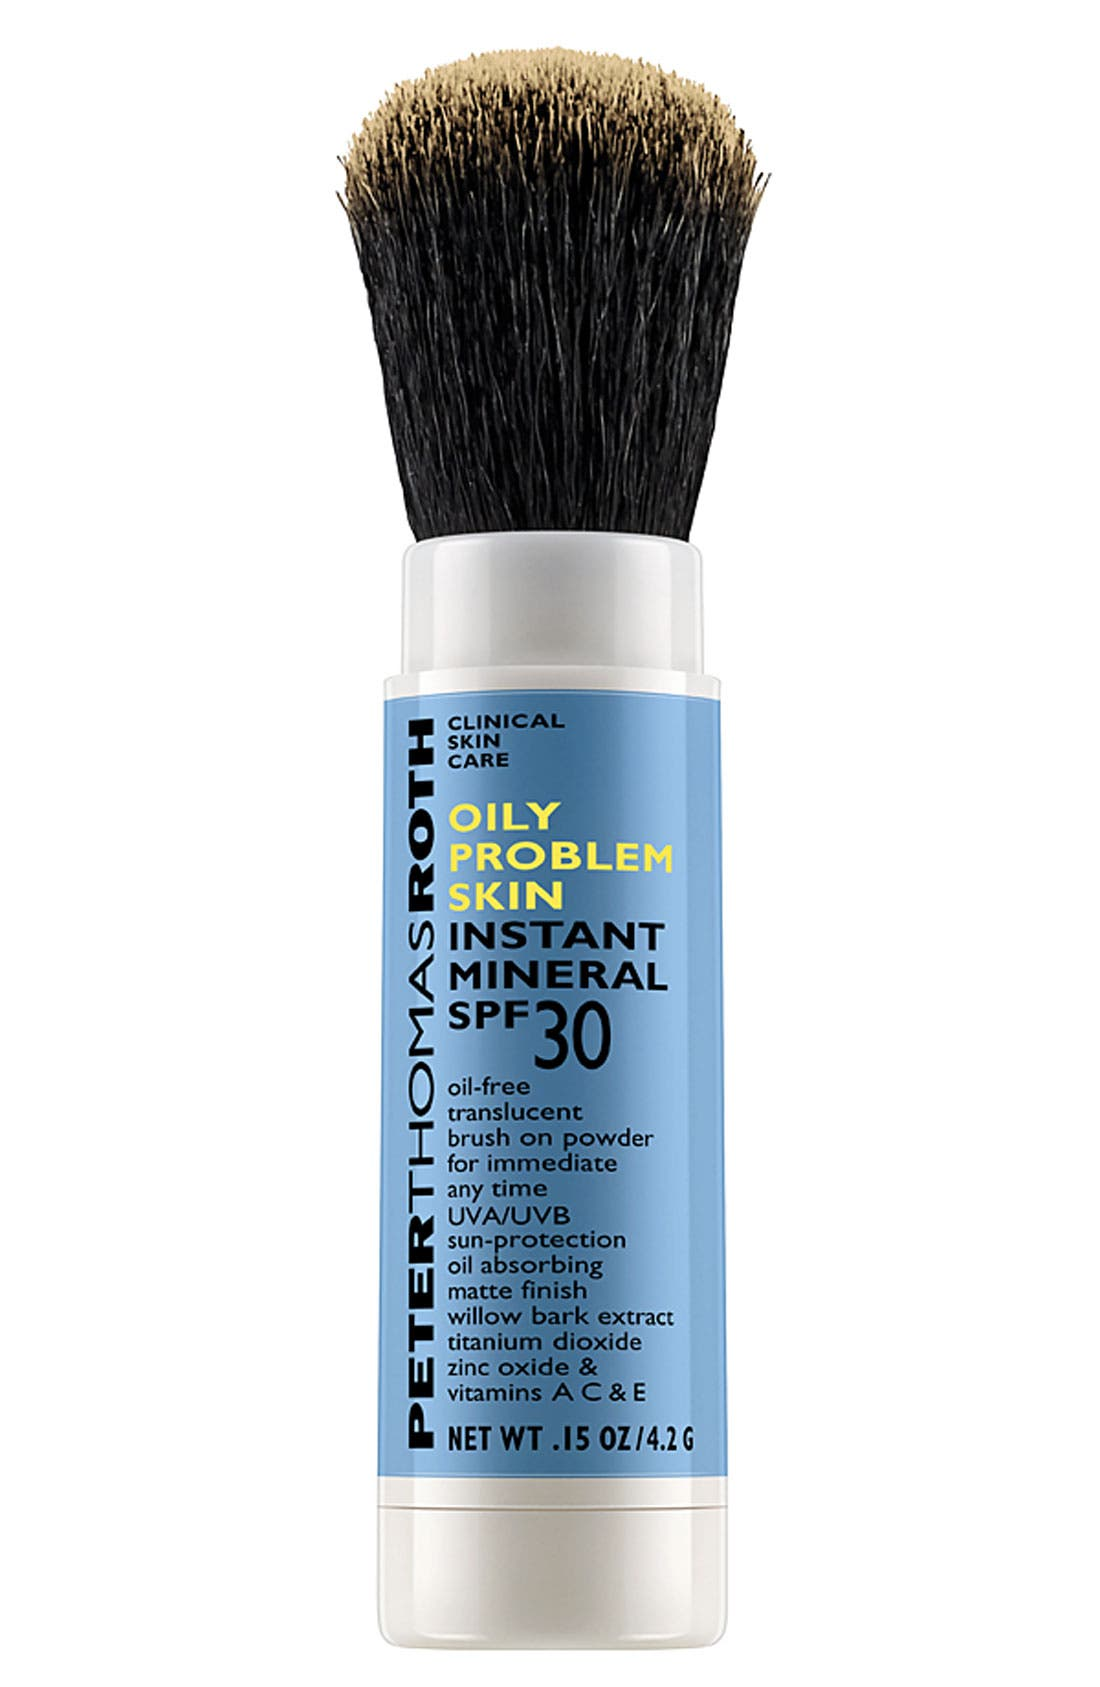 Peter Thomas Roth Instant Mineral Oily Problem Skin Translucent Brush-On Powder SPF 30